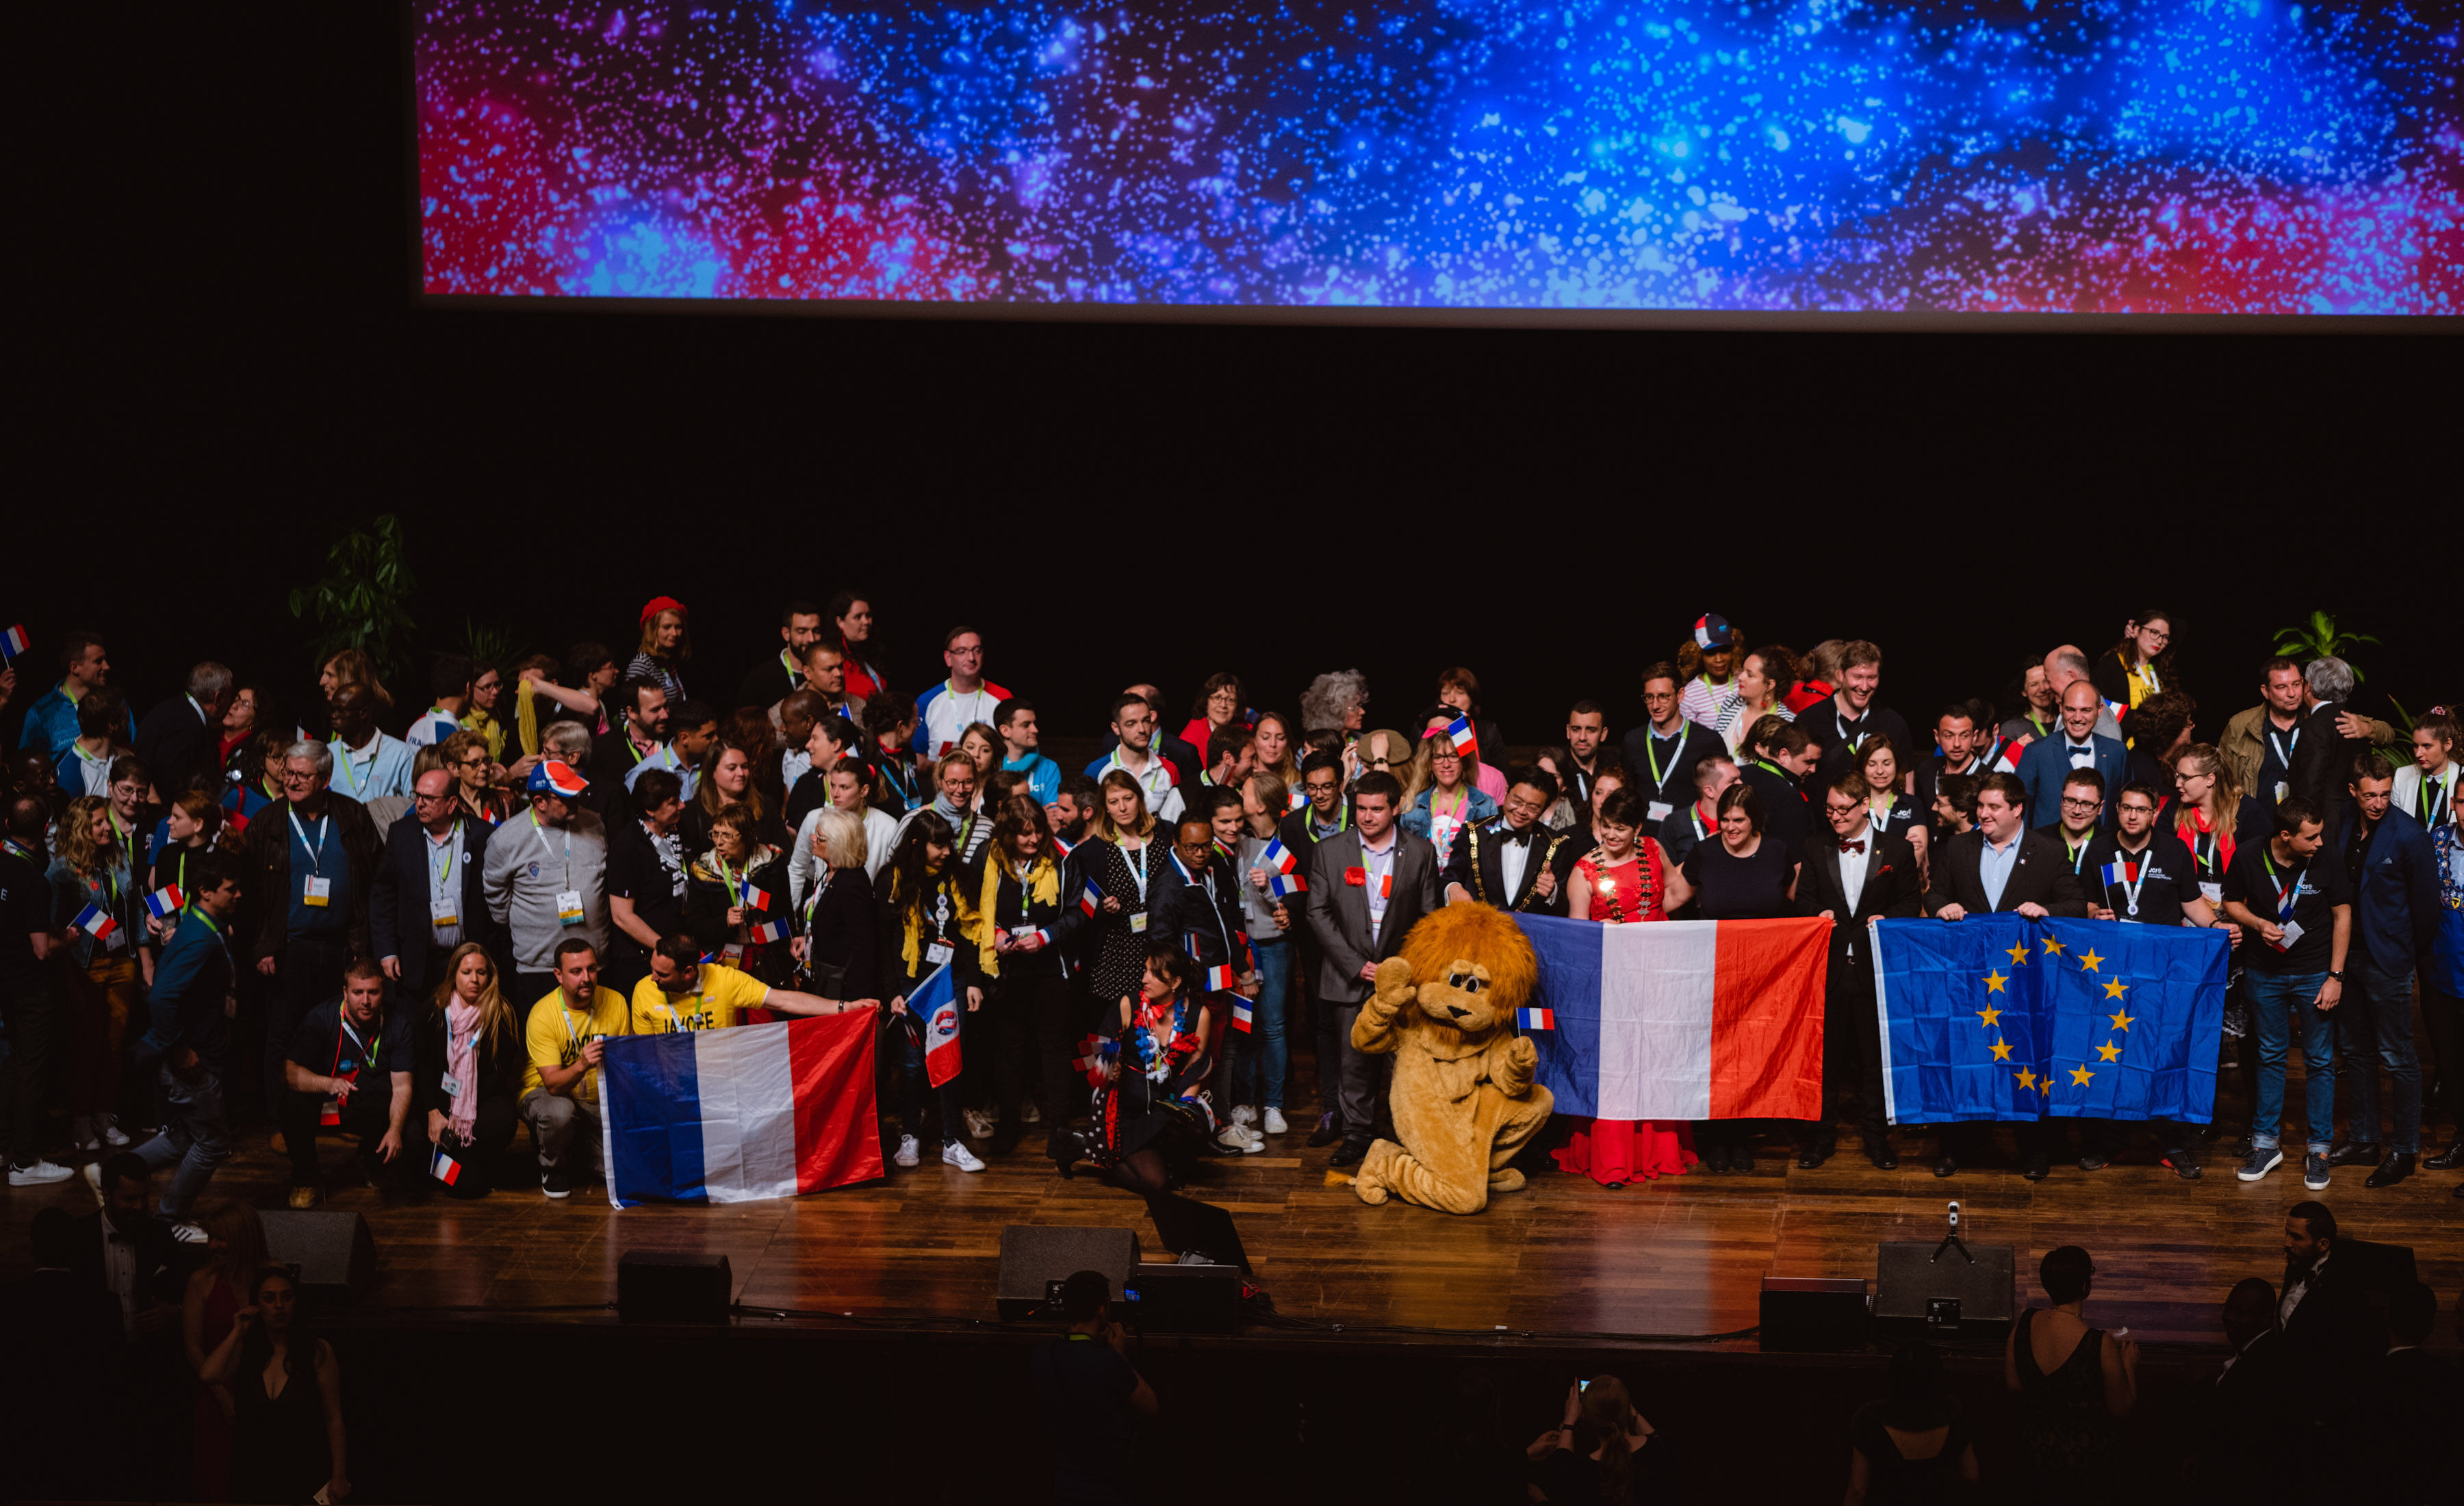 Shattering Expectations at the JCI European Conference